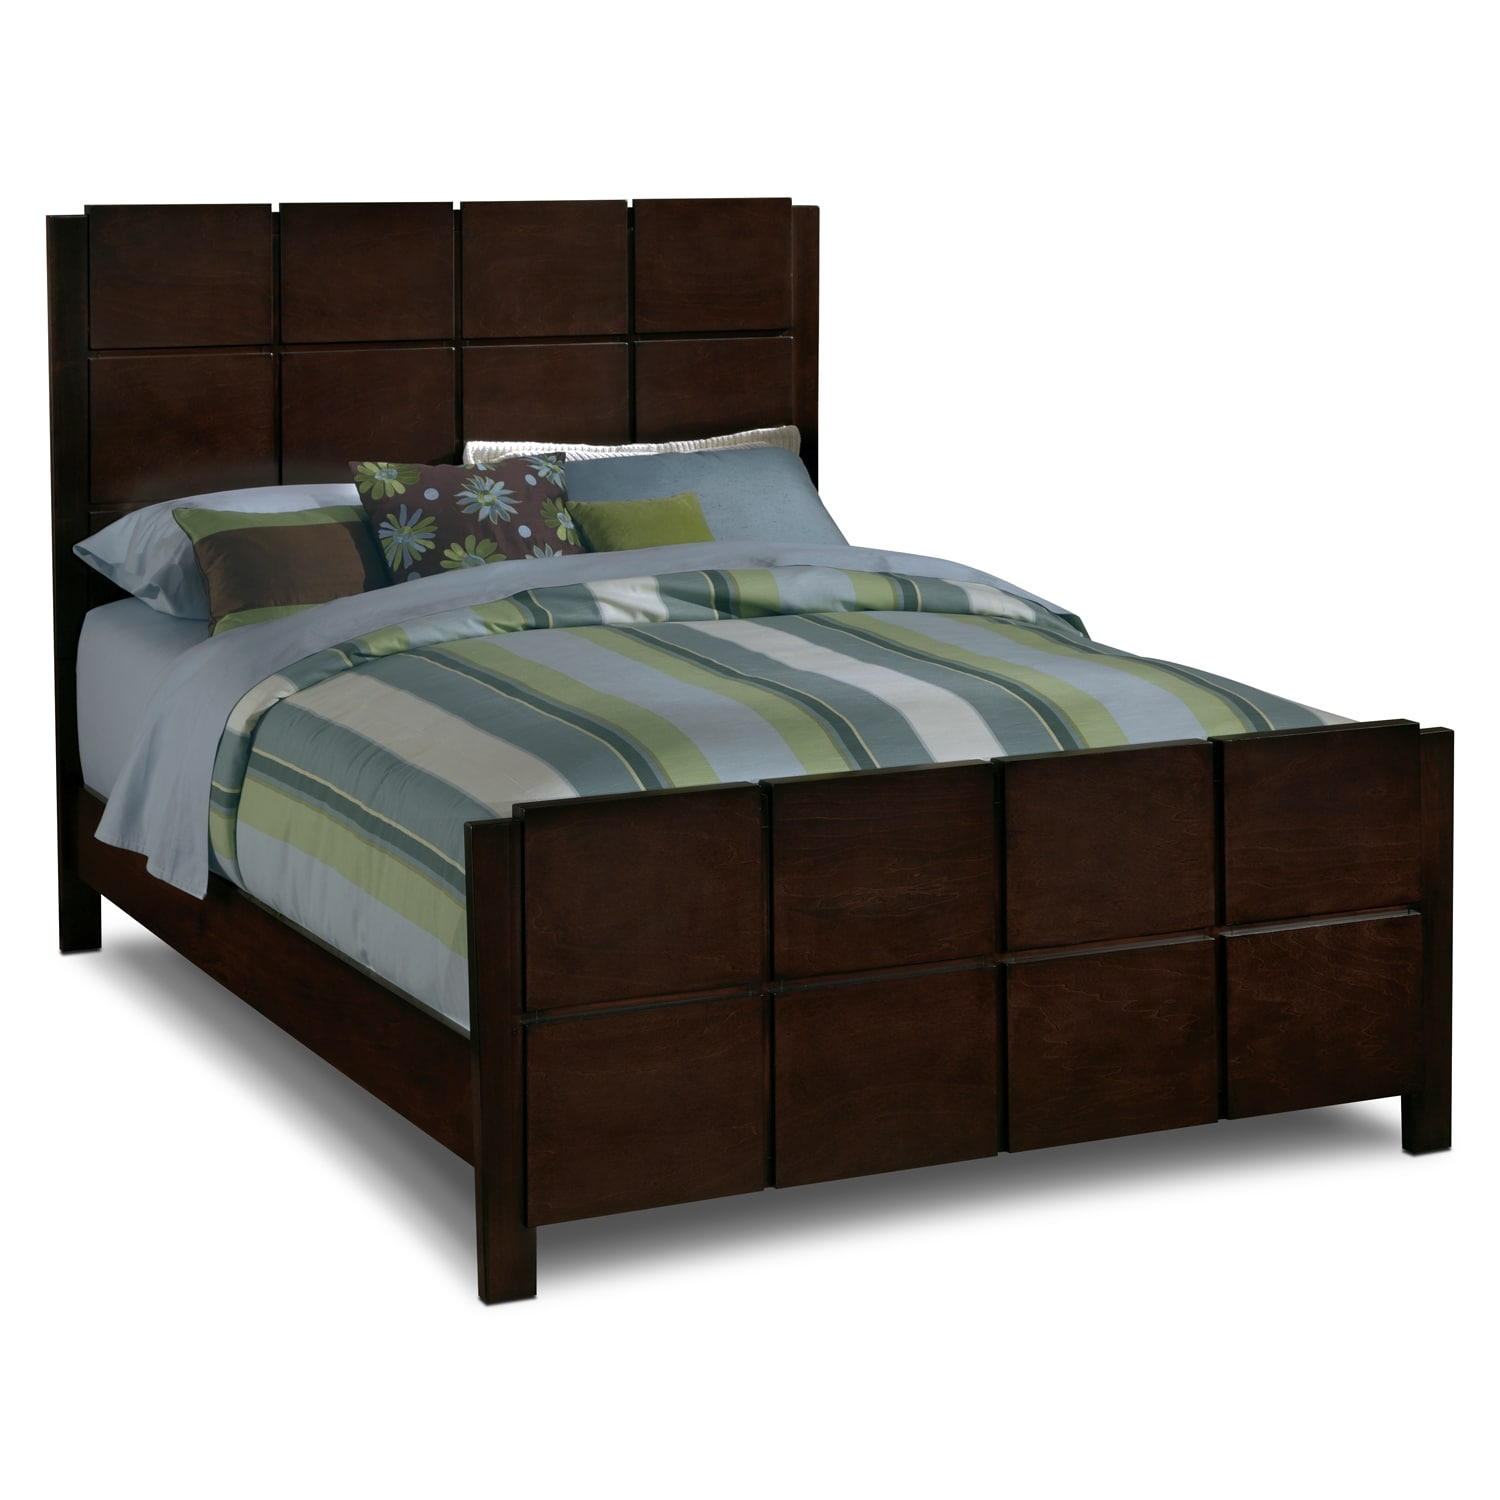 Mosaic queen bed dark brown value city furniture for Com furniture